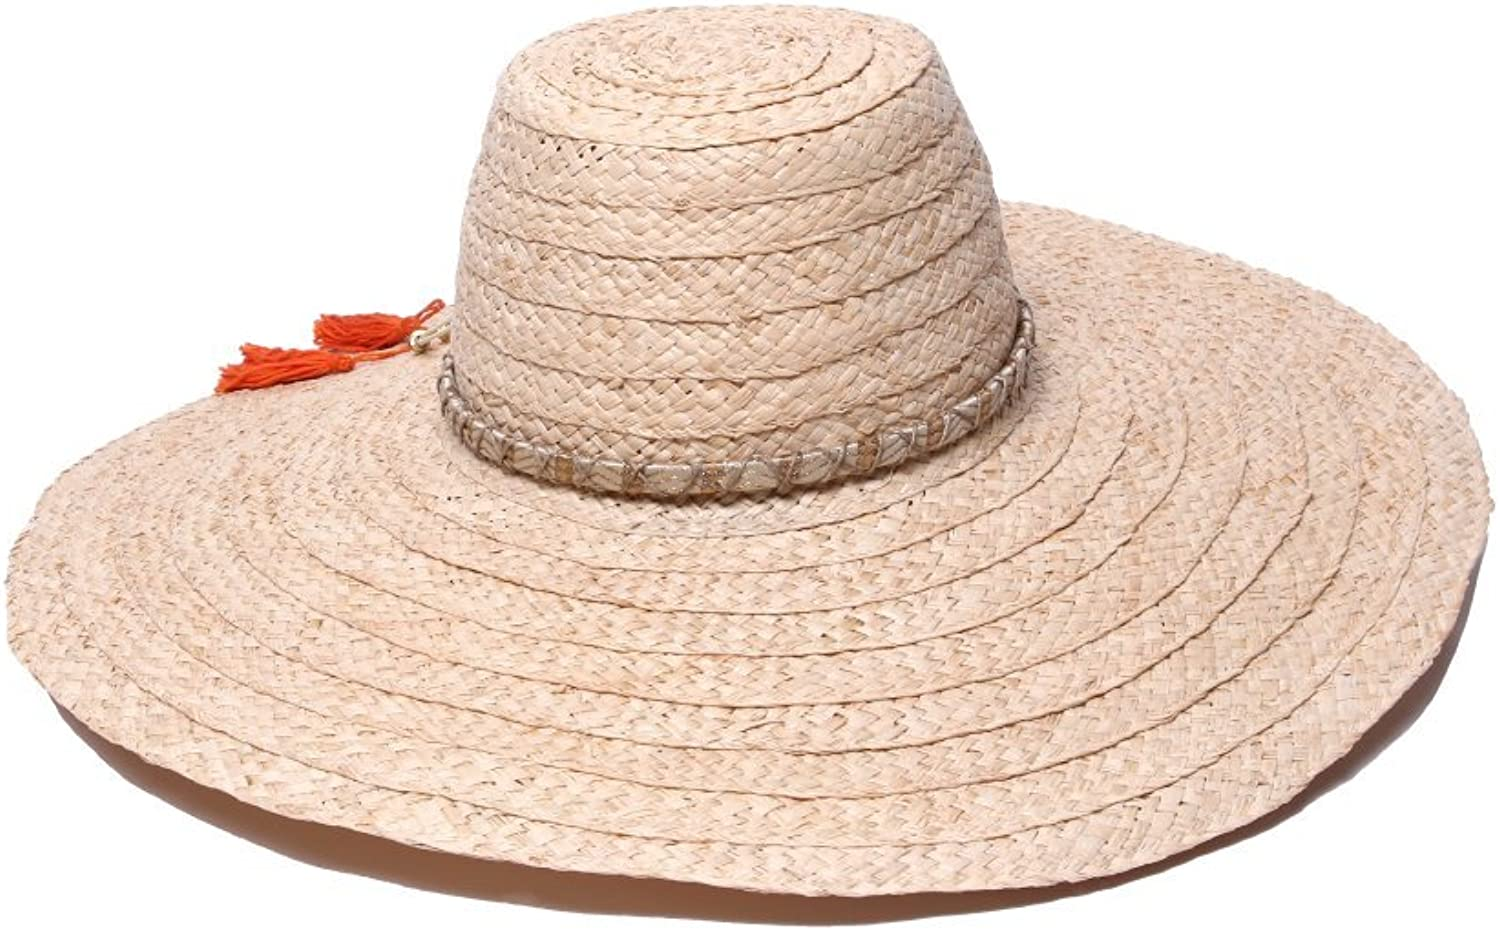 'ale by alessandra Womens Palapa Large Brim Raffia Floppy Hat with Metallic Sari Trim Hat